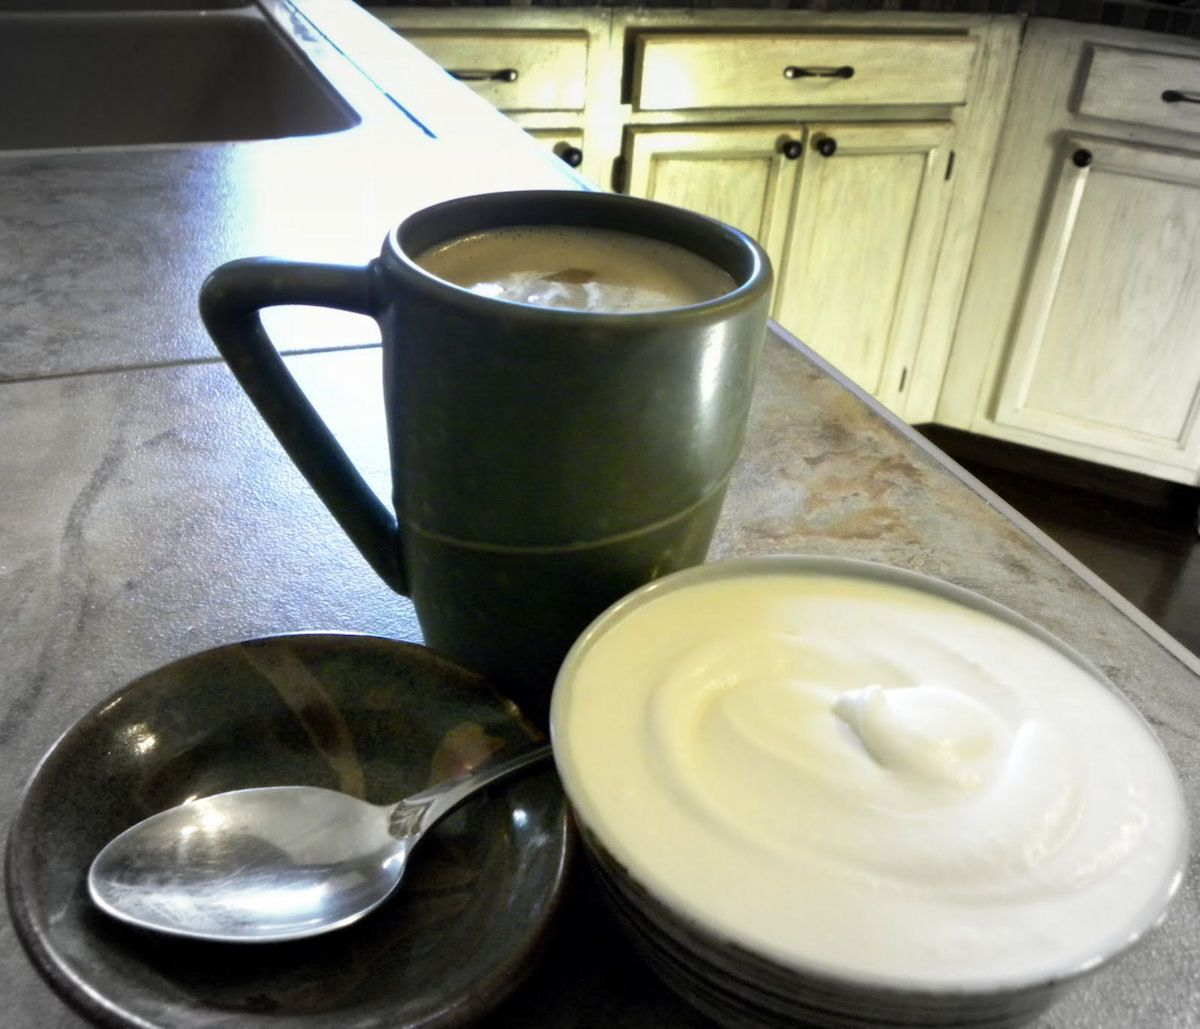 A primal non dairy coffee creamer with coconut oil coconut cream a primal non dairy coffee creamer with coconut oil coconut cream and an egg note try using lecithin granules in place of the egg to try to veganise this malvernweather Choice Image